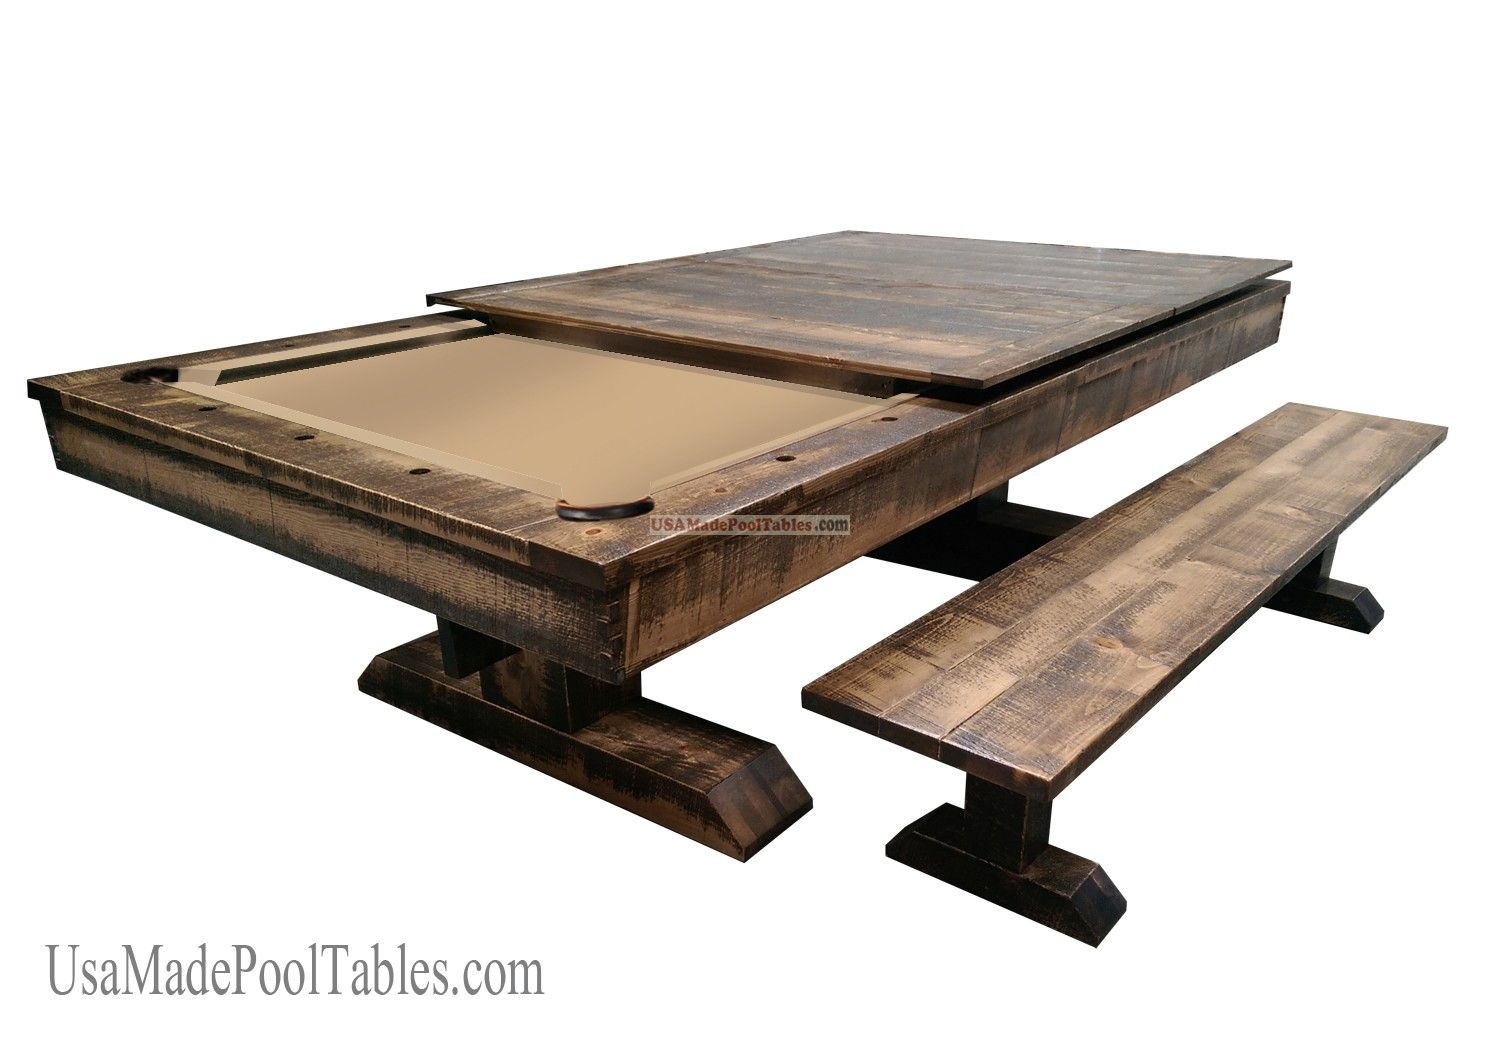 Rustic Table Rustic Pool Tables Rustic Dining Table Rustic Pool Table Rustic Bench Pool Table Dining Table Pool Table Room Pool Table